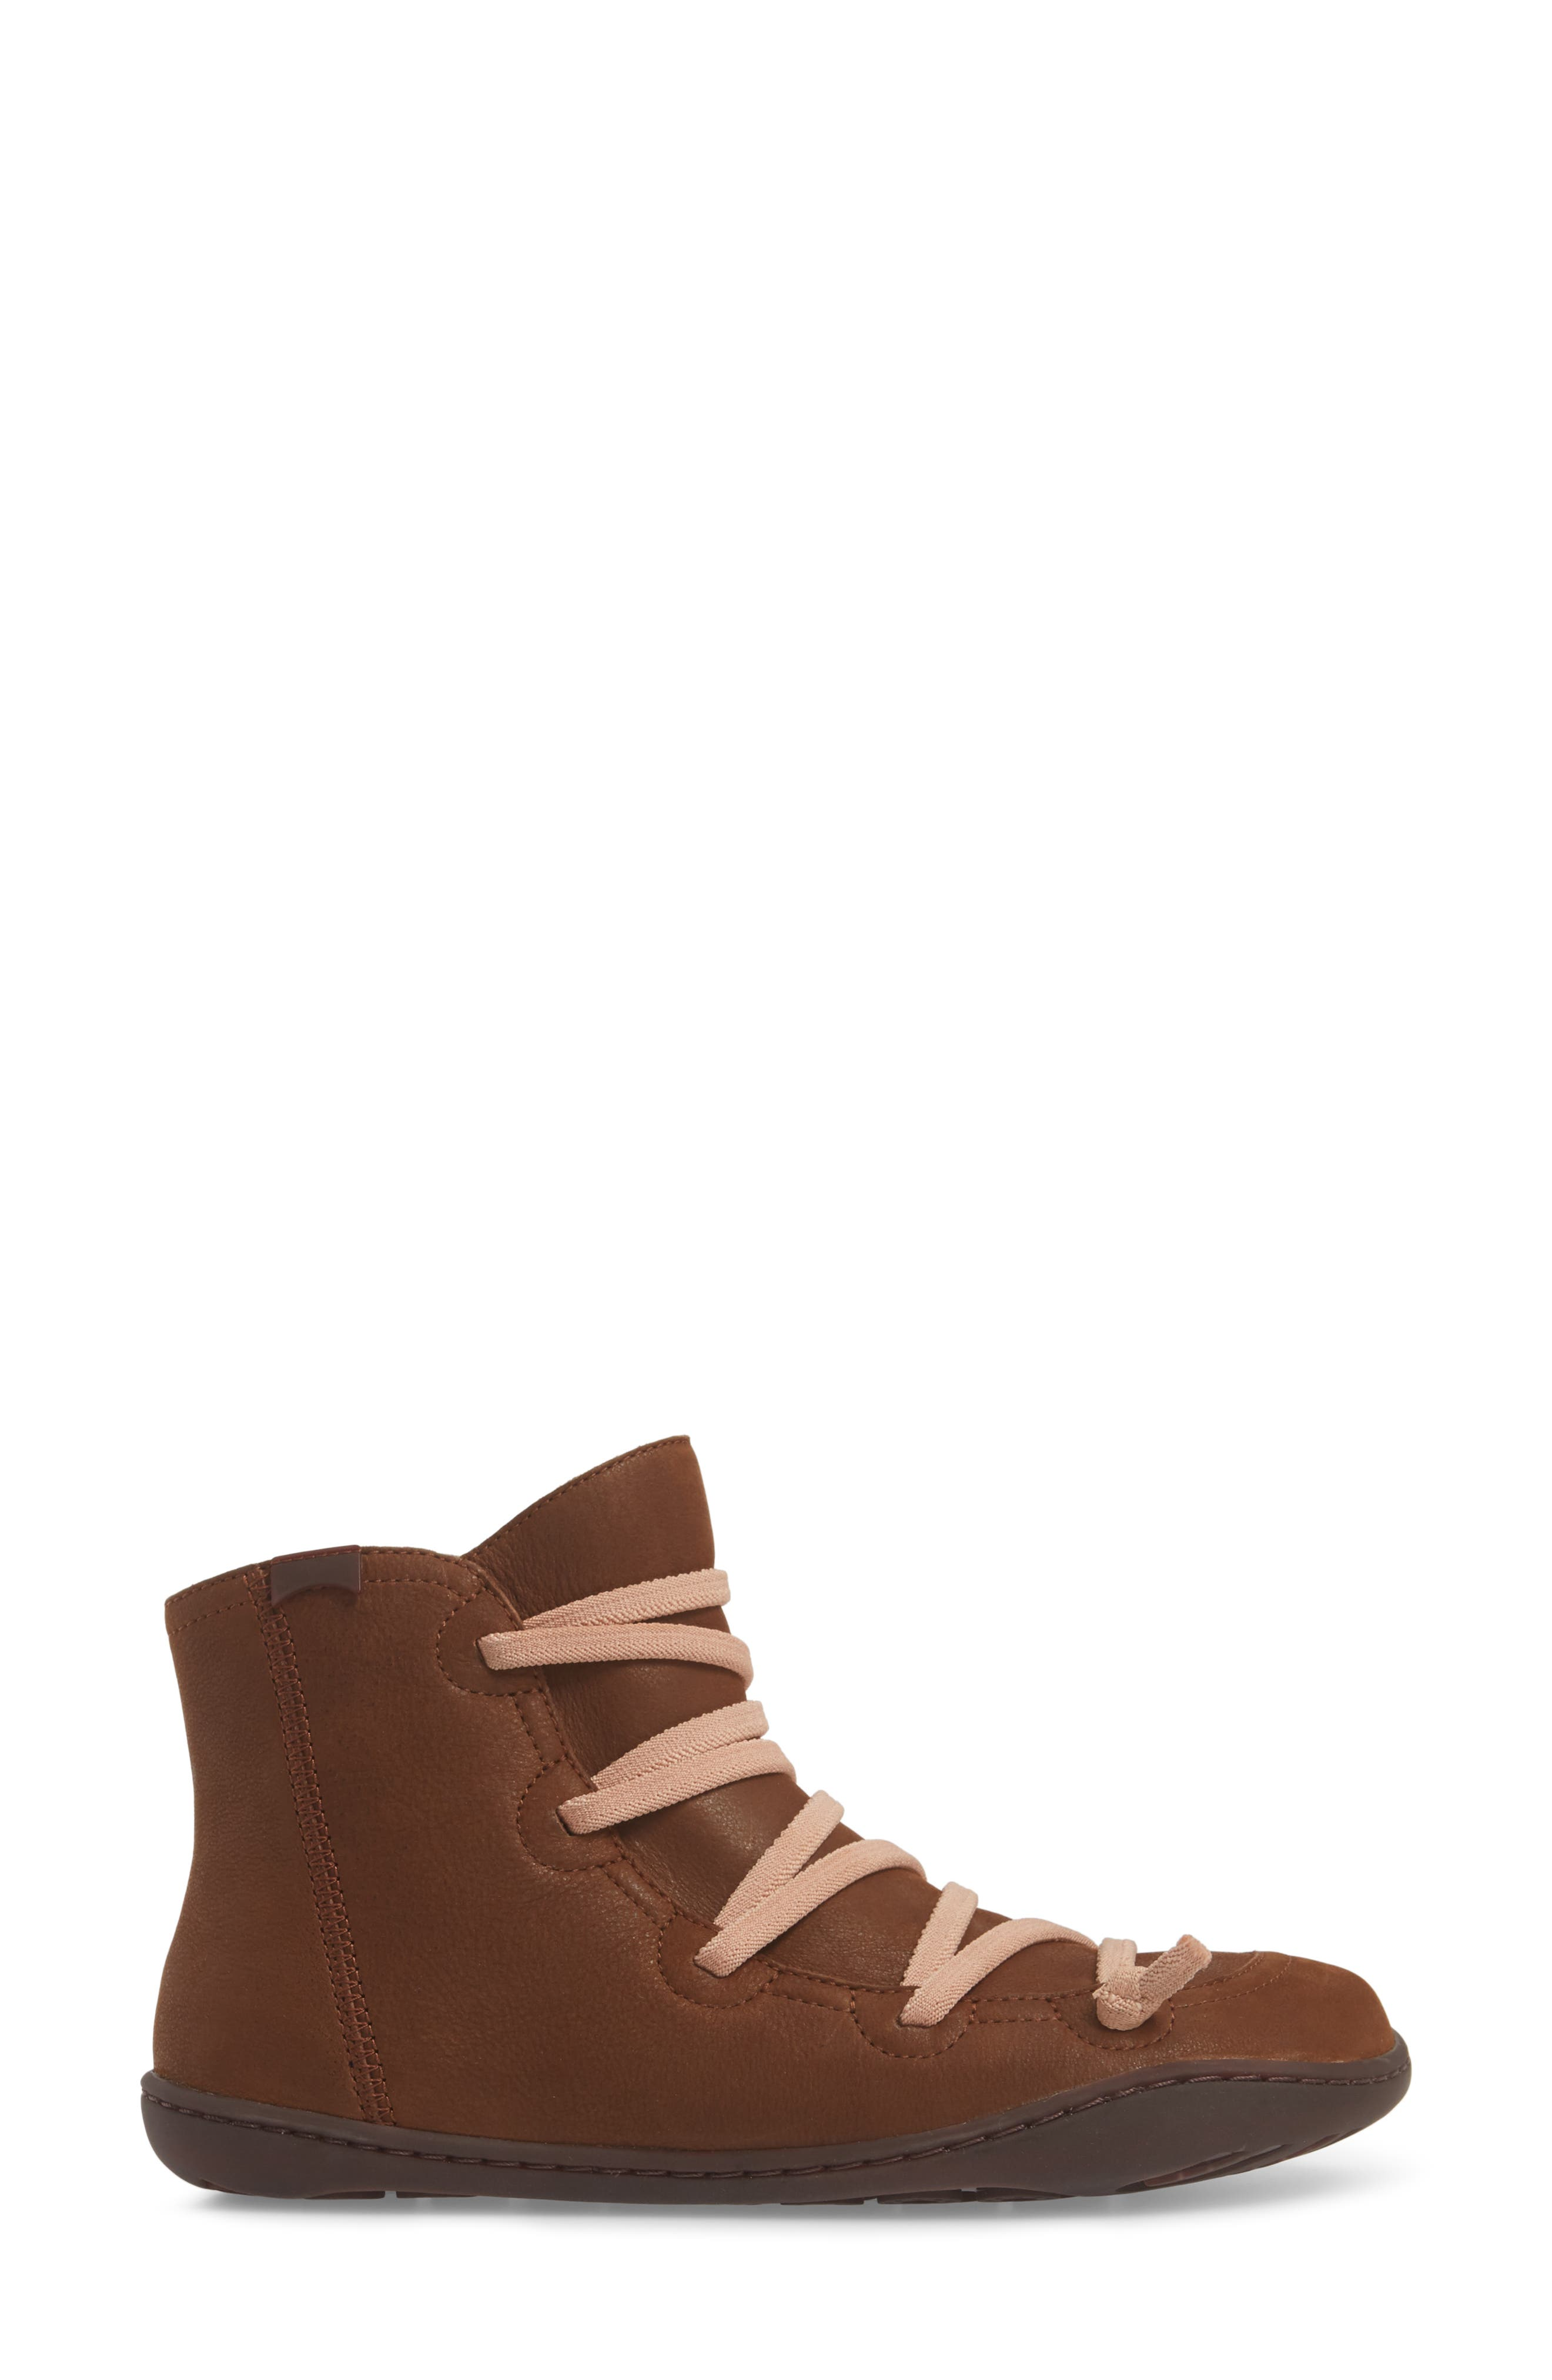 CAMPER,                             Peu Cami Bootie,                             Alternate thumbnail 3, color,                             MEDIUM BROWN LEATHER